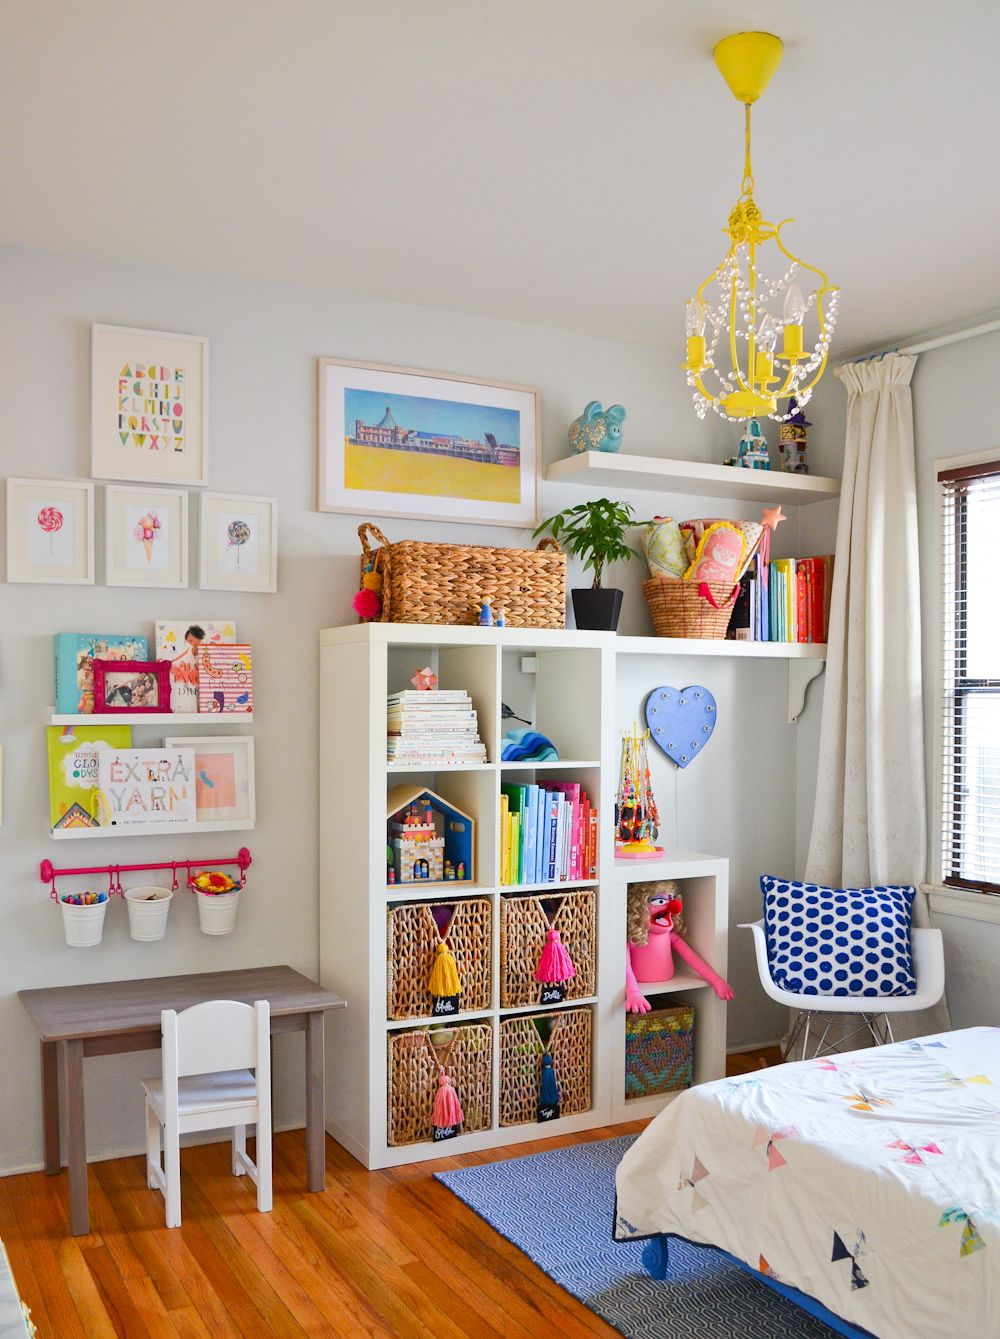 25 sweet reading nook ideas for girls home girly rooms rh pinterest com ikea childrens room decor Tumblr Room Decor IKEA